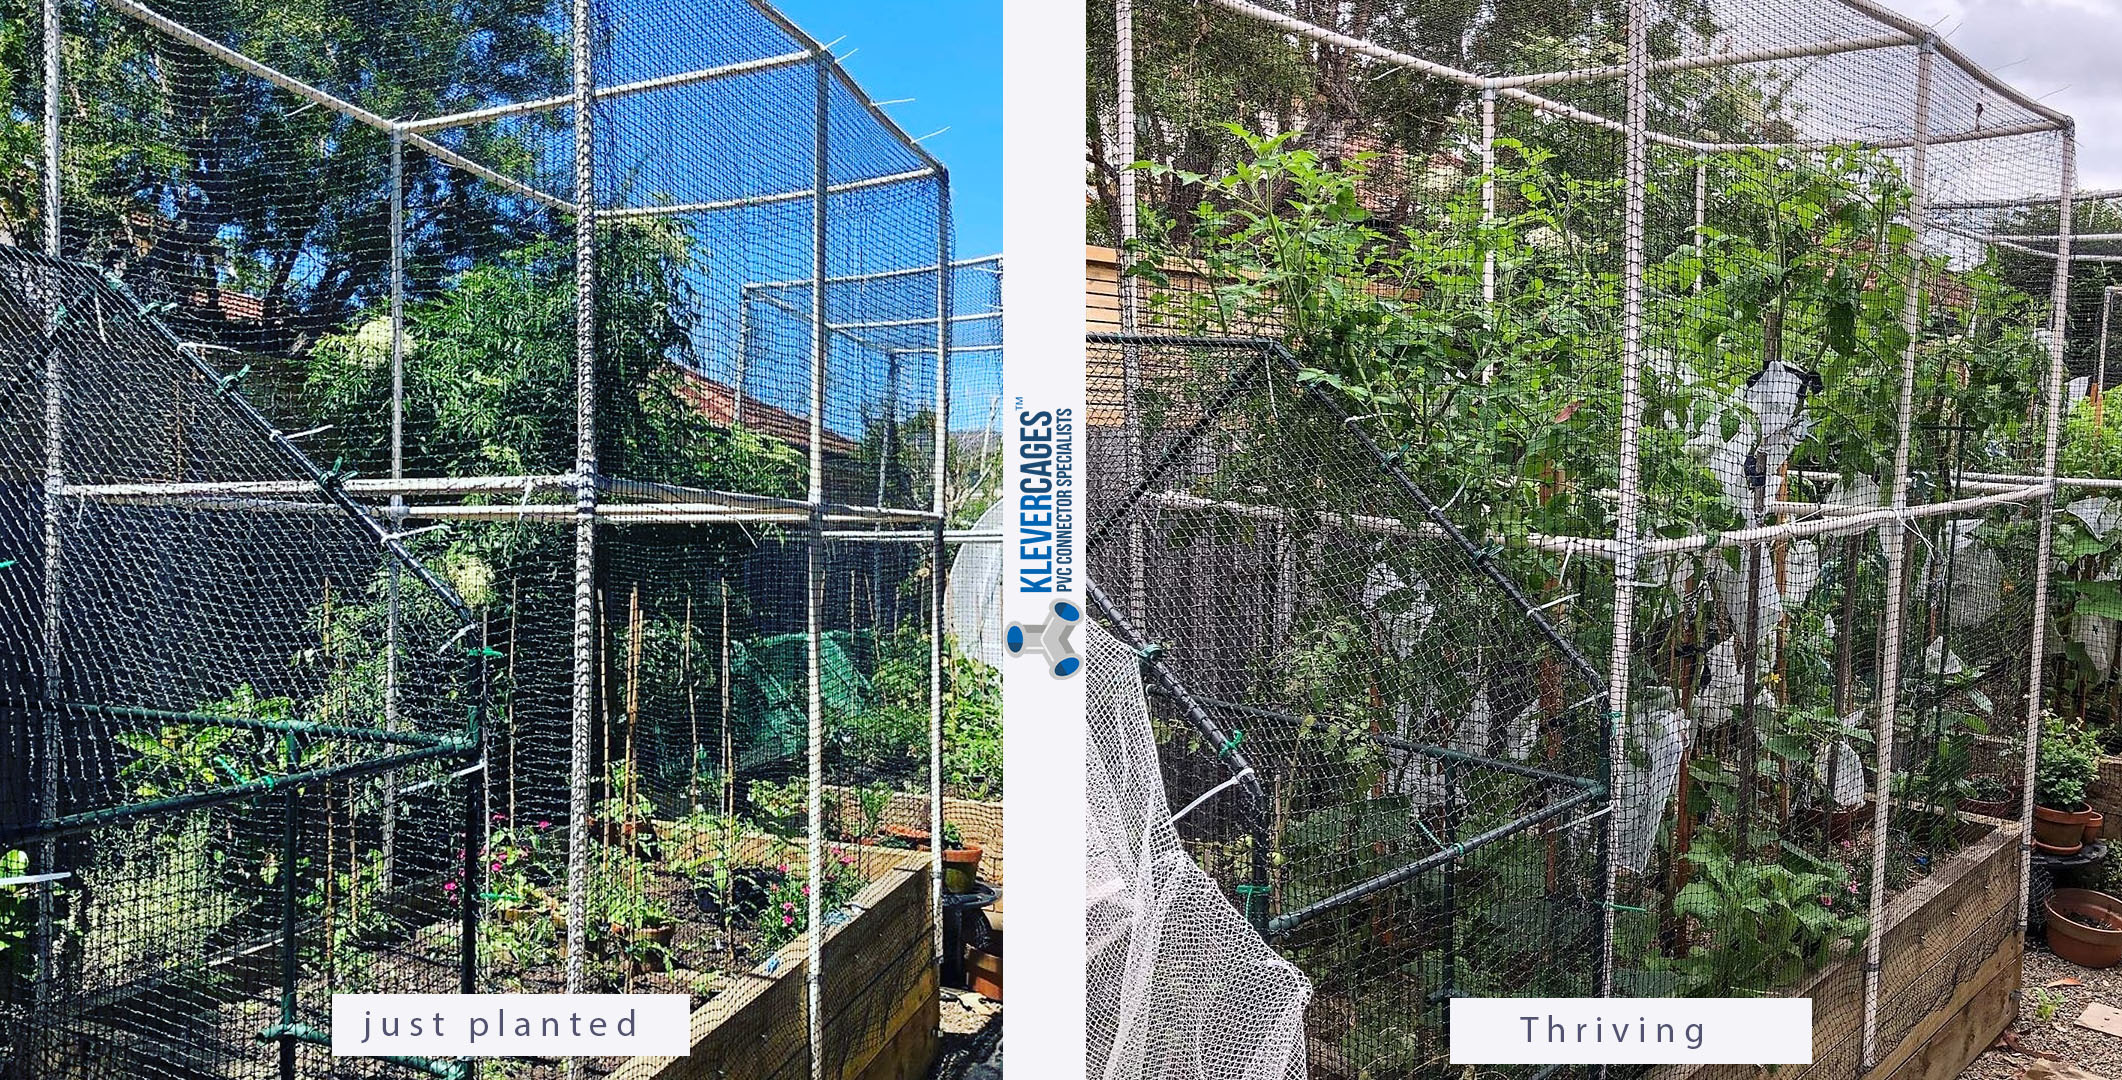 Before and after photos of tomato plants being protected from pests  in an easy to build PVC garden protection frame covered with heavy duty netting attached with snapclamps from Klever Cages